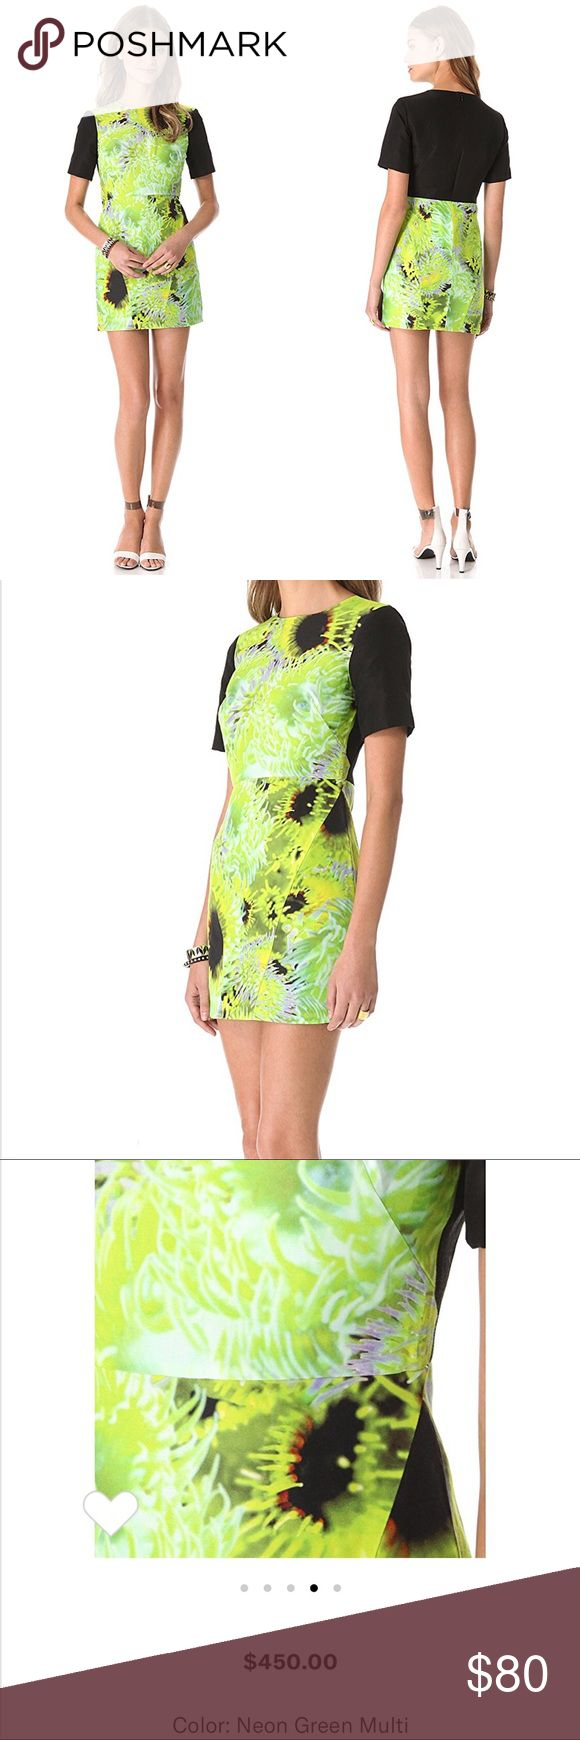 Tibi 'Athena' Dress Tibi 'Athena' Dress. Size 0/XS. Neon lime and black graphic floral print. Fitted and tailored silhouette. Zips up the back. Excellent pre-owned condition. Unfortunately it just doesn't fit. Retail $450. Tibi Dresses Mini